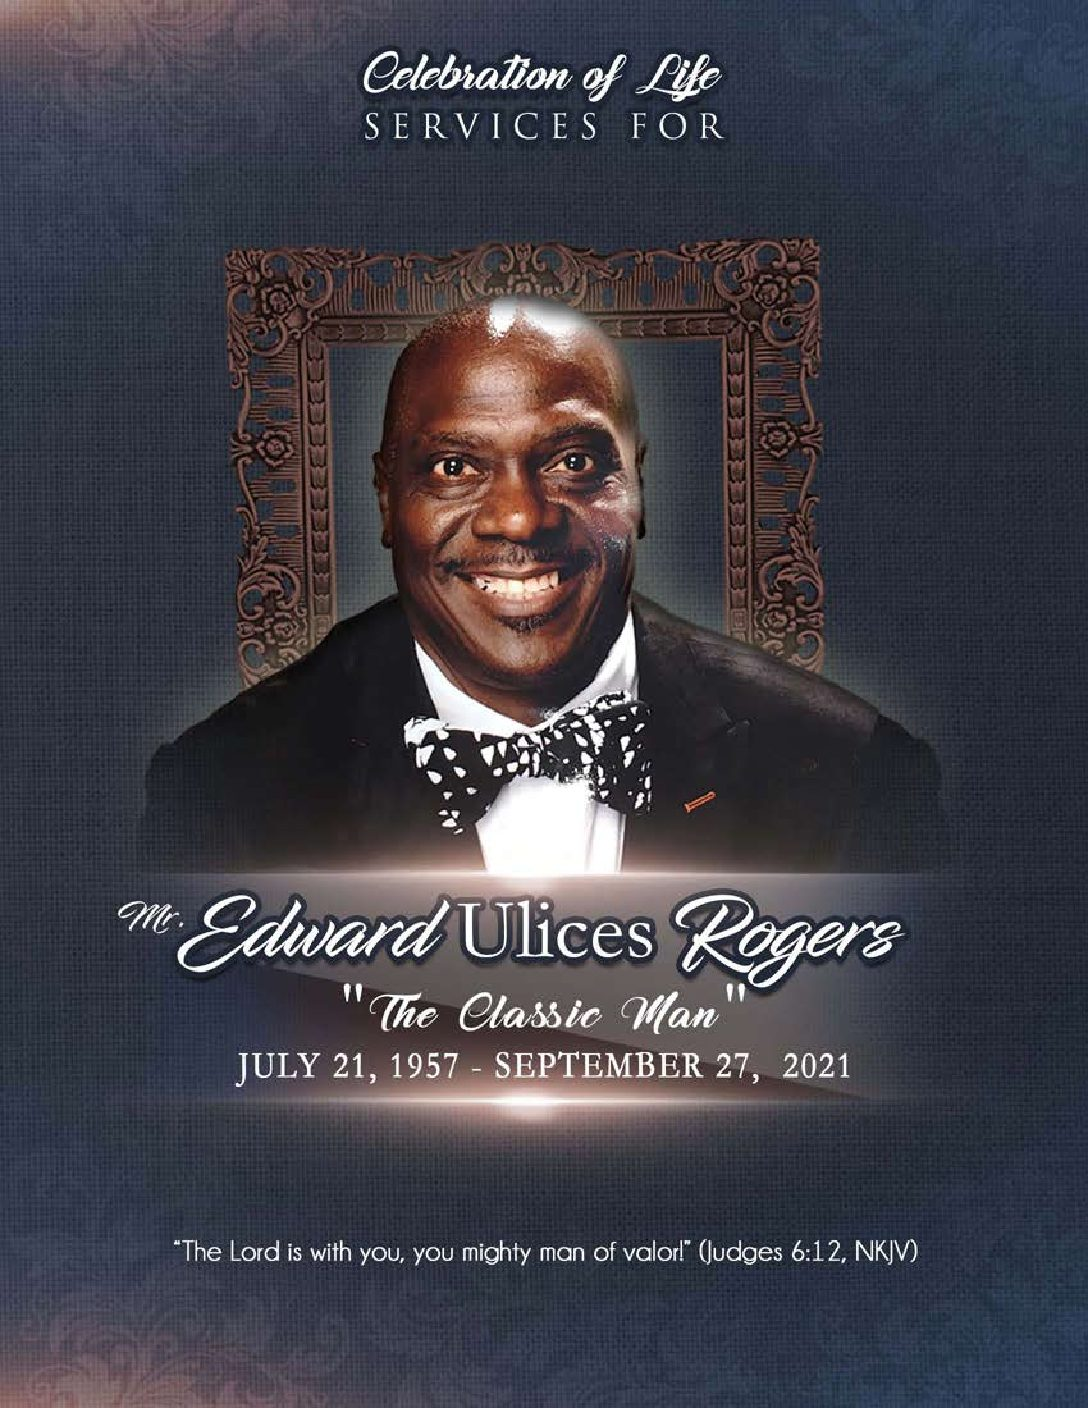 Edward Ulices Rogers 1957-2021